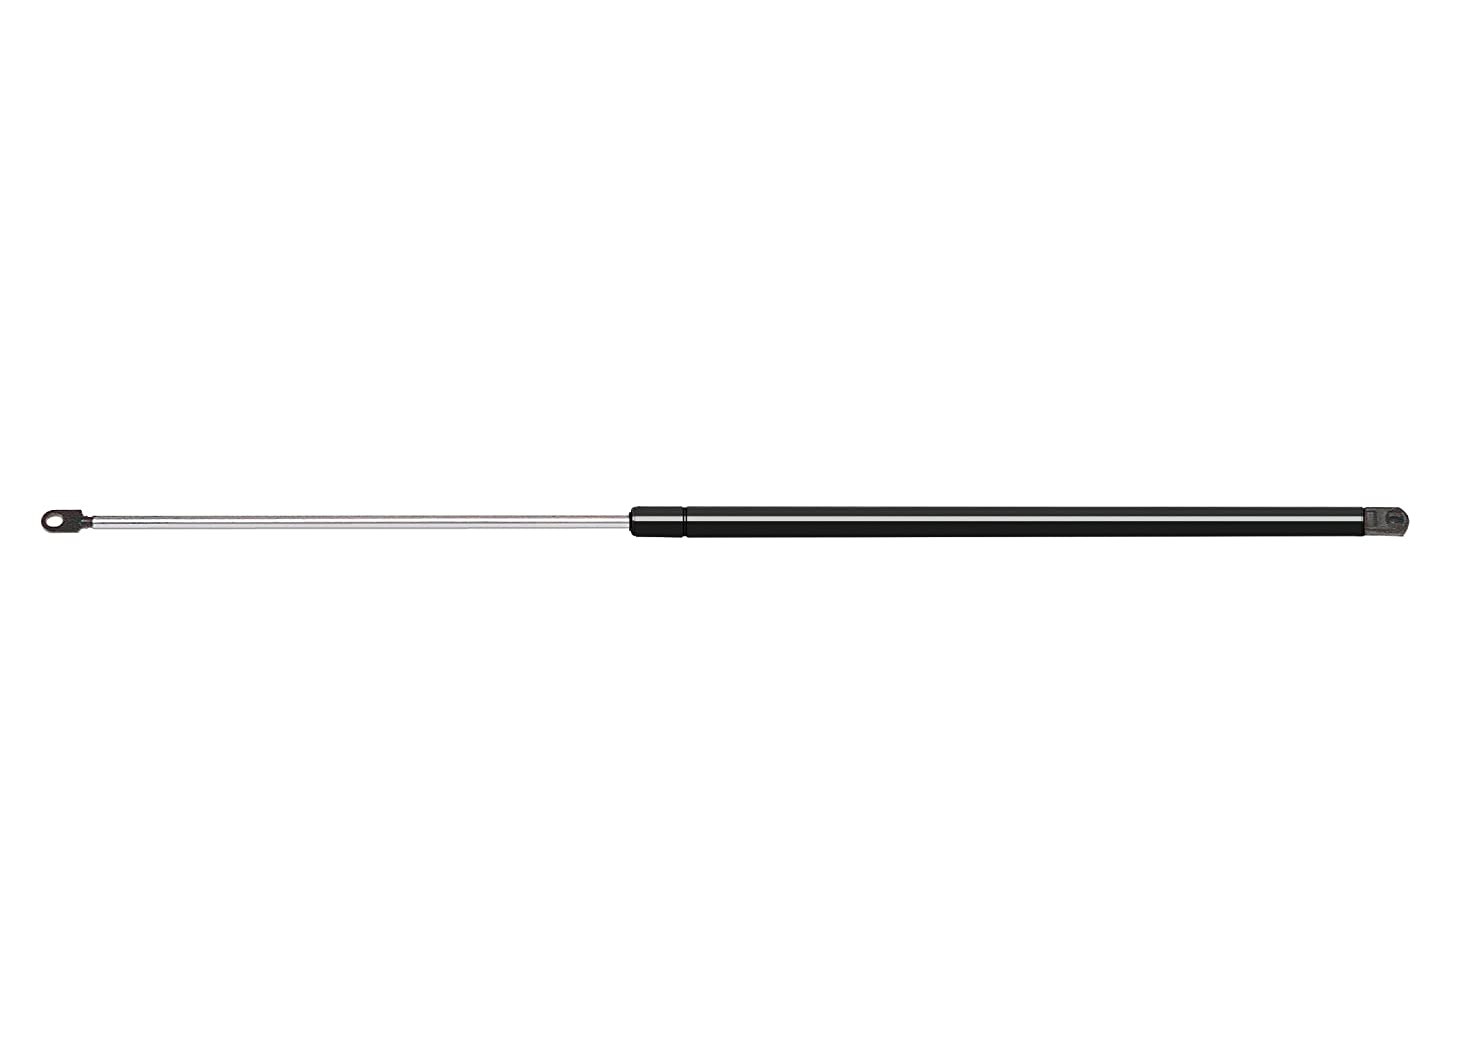 StrongArm 4508 Lexus SC300 w/Spoiler Trunk Lift Support 1992-96, Pack of 1